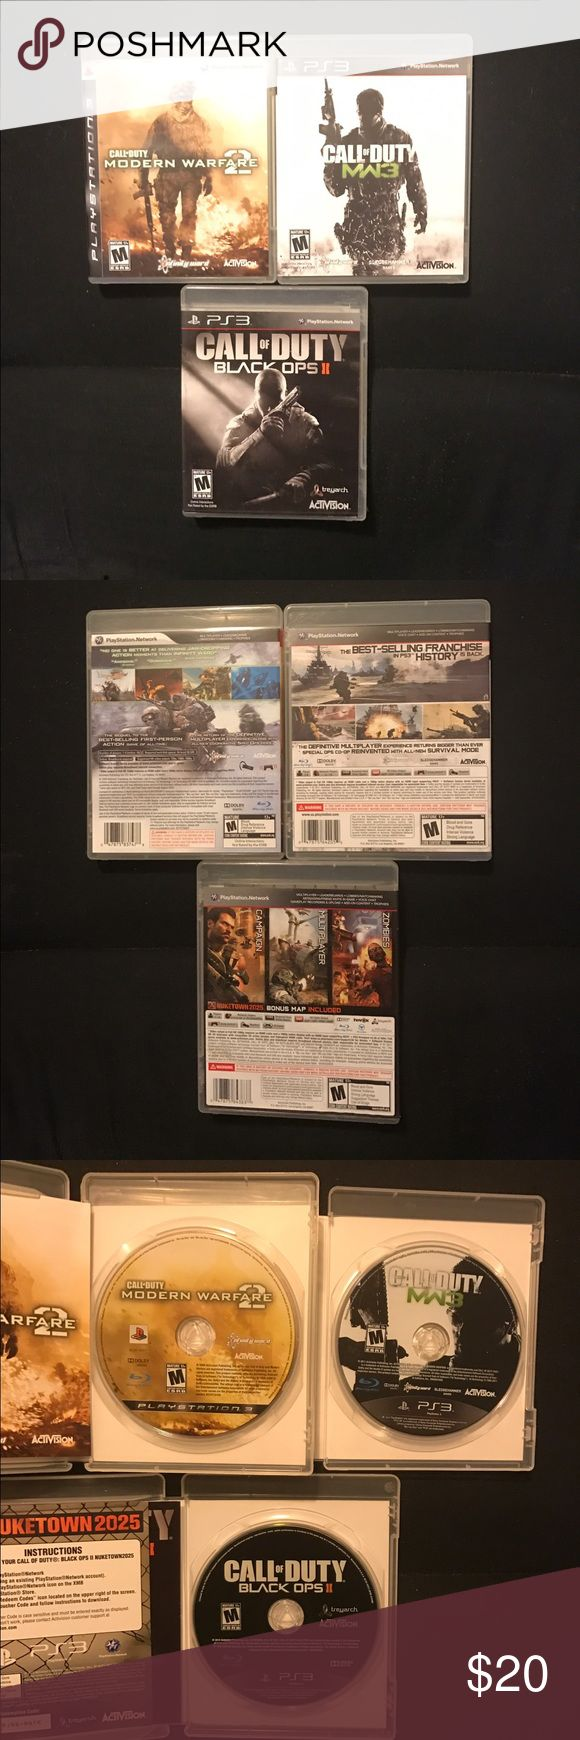 Call of Duty PS3 Bundle MW2, MW3, BO2 Call of Duty PlayStation 3 Bundle. Modern Warfare 2, Modern Warfare 3, Black Opps 2. Gently used and handled with care. Good condition. Remained in cases when not in use. Other